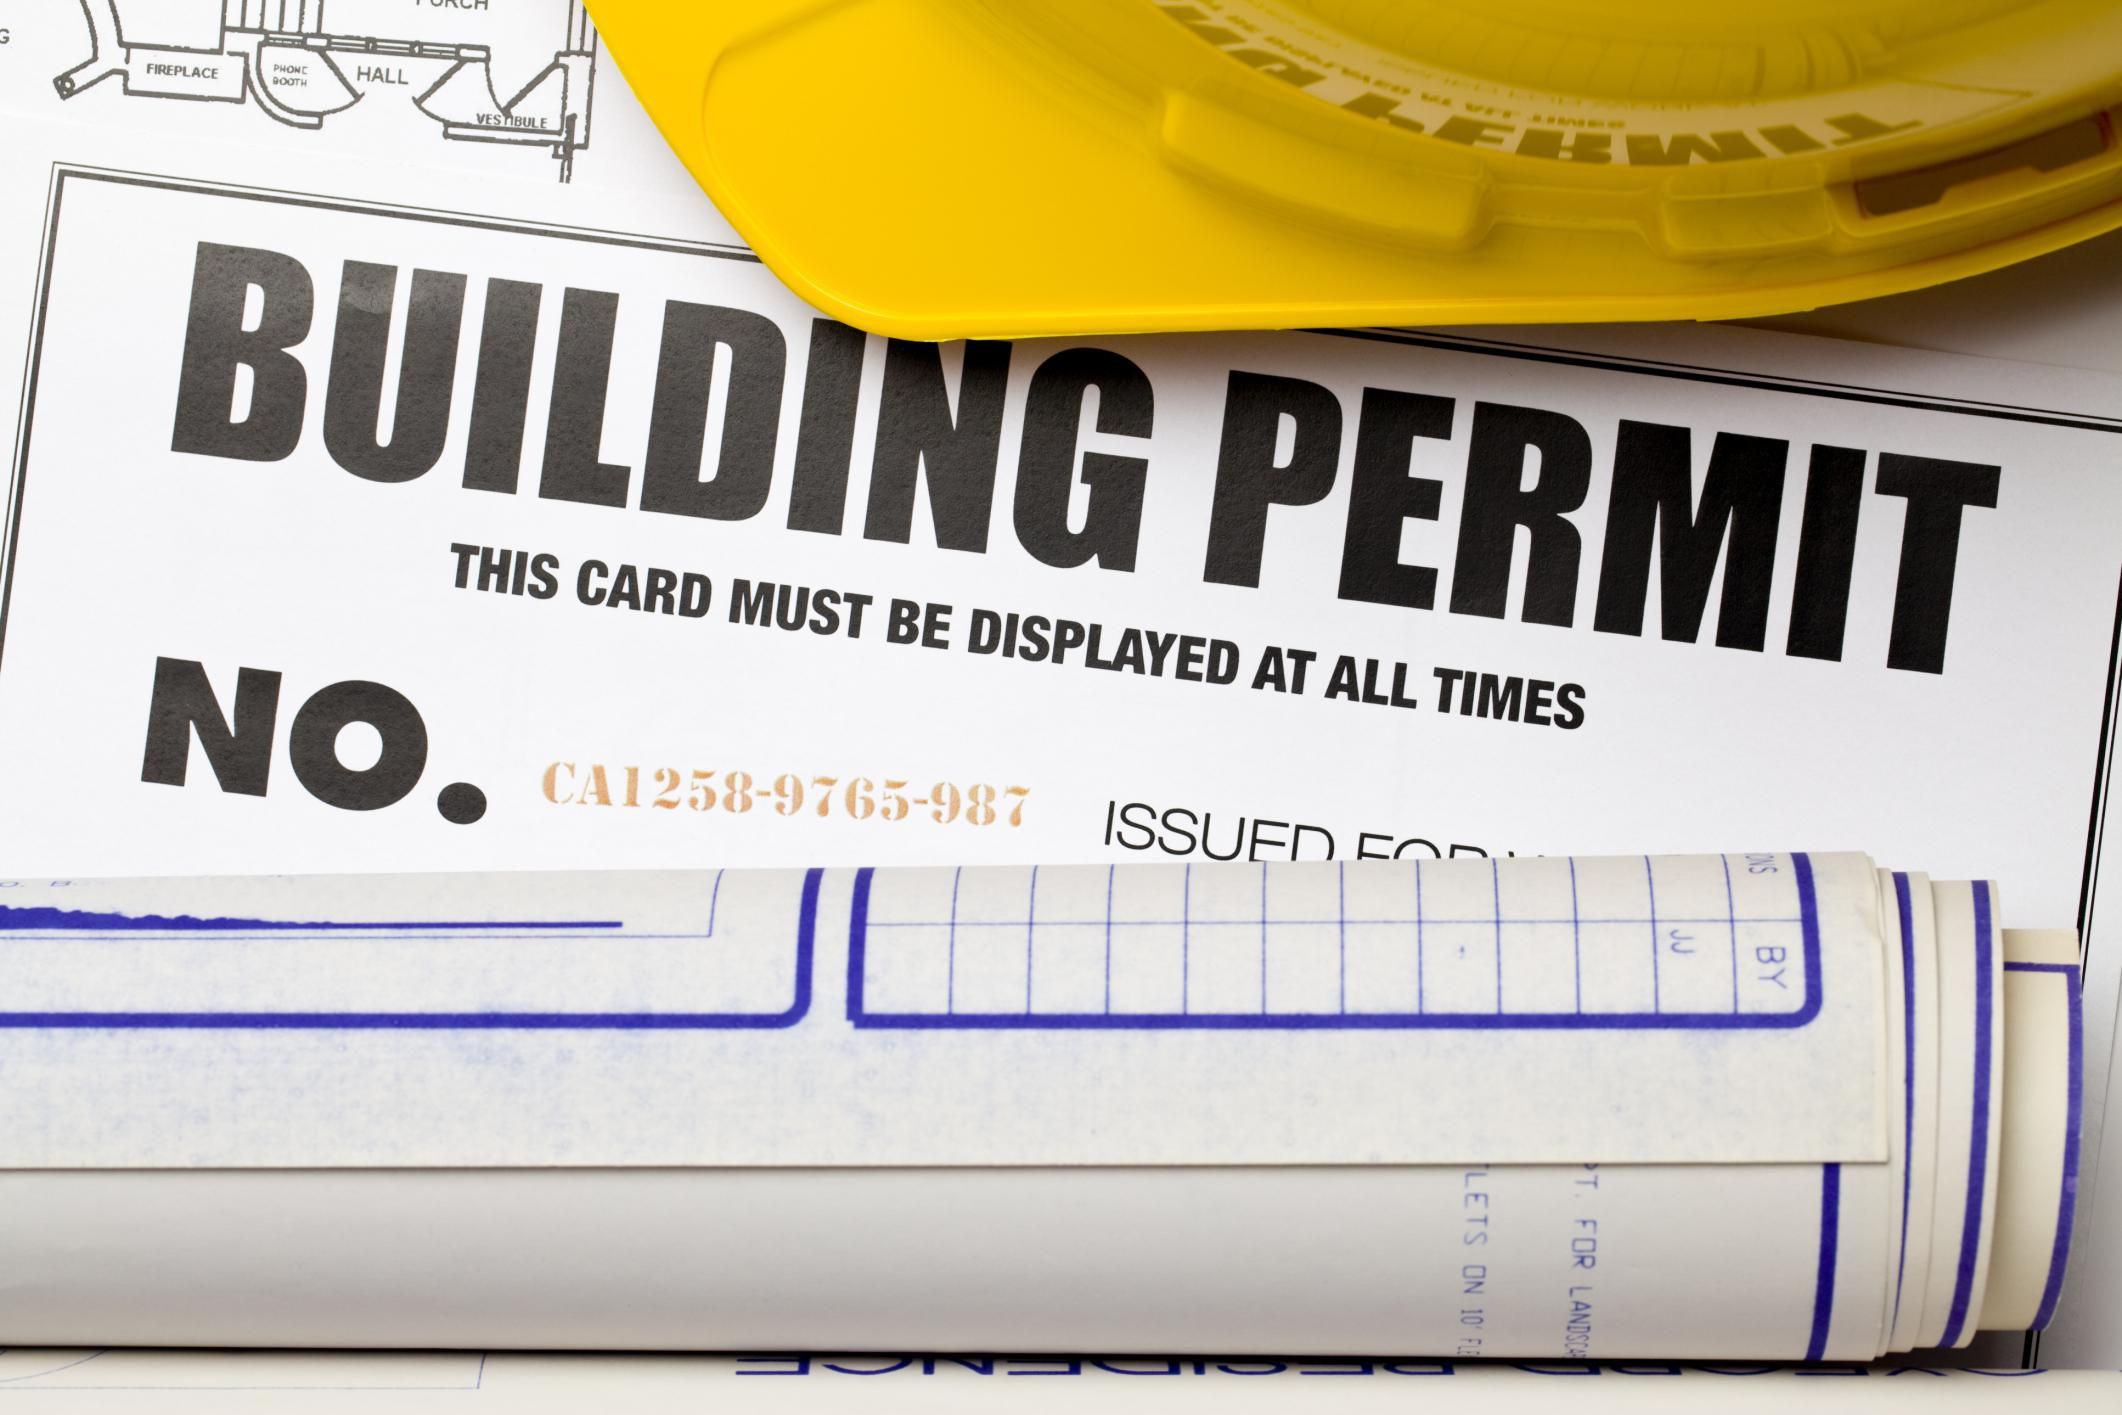 Bathroom Remodel Without Permit when do i need a permit for remodeling?